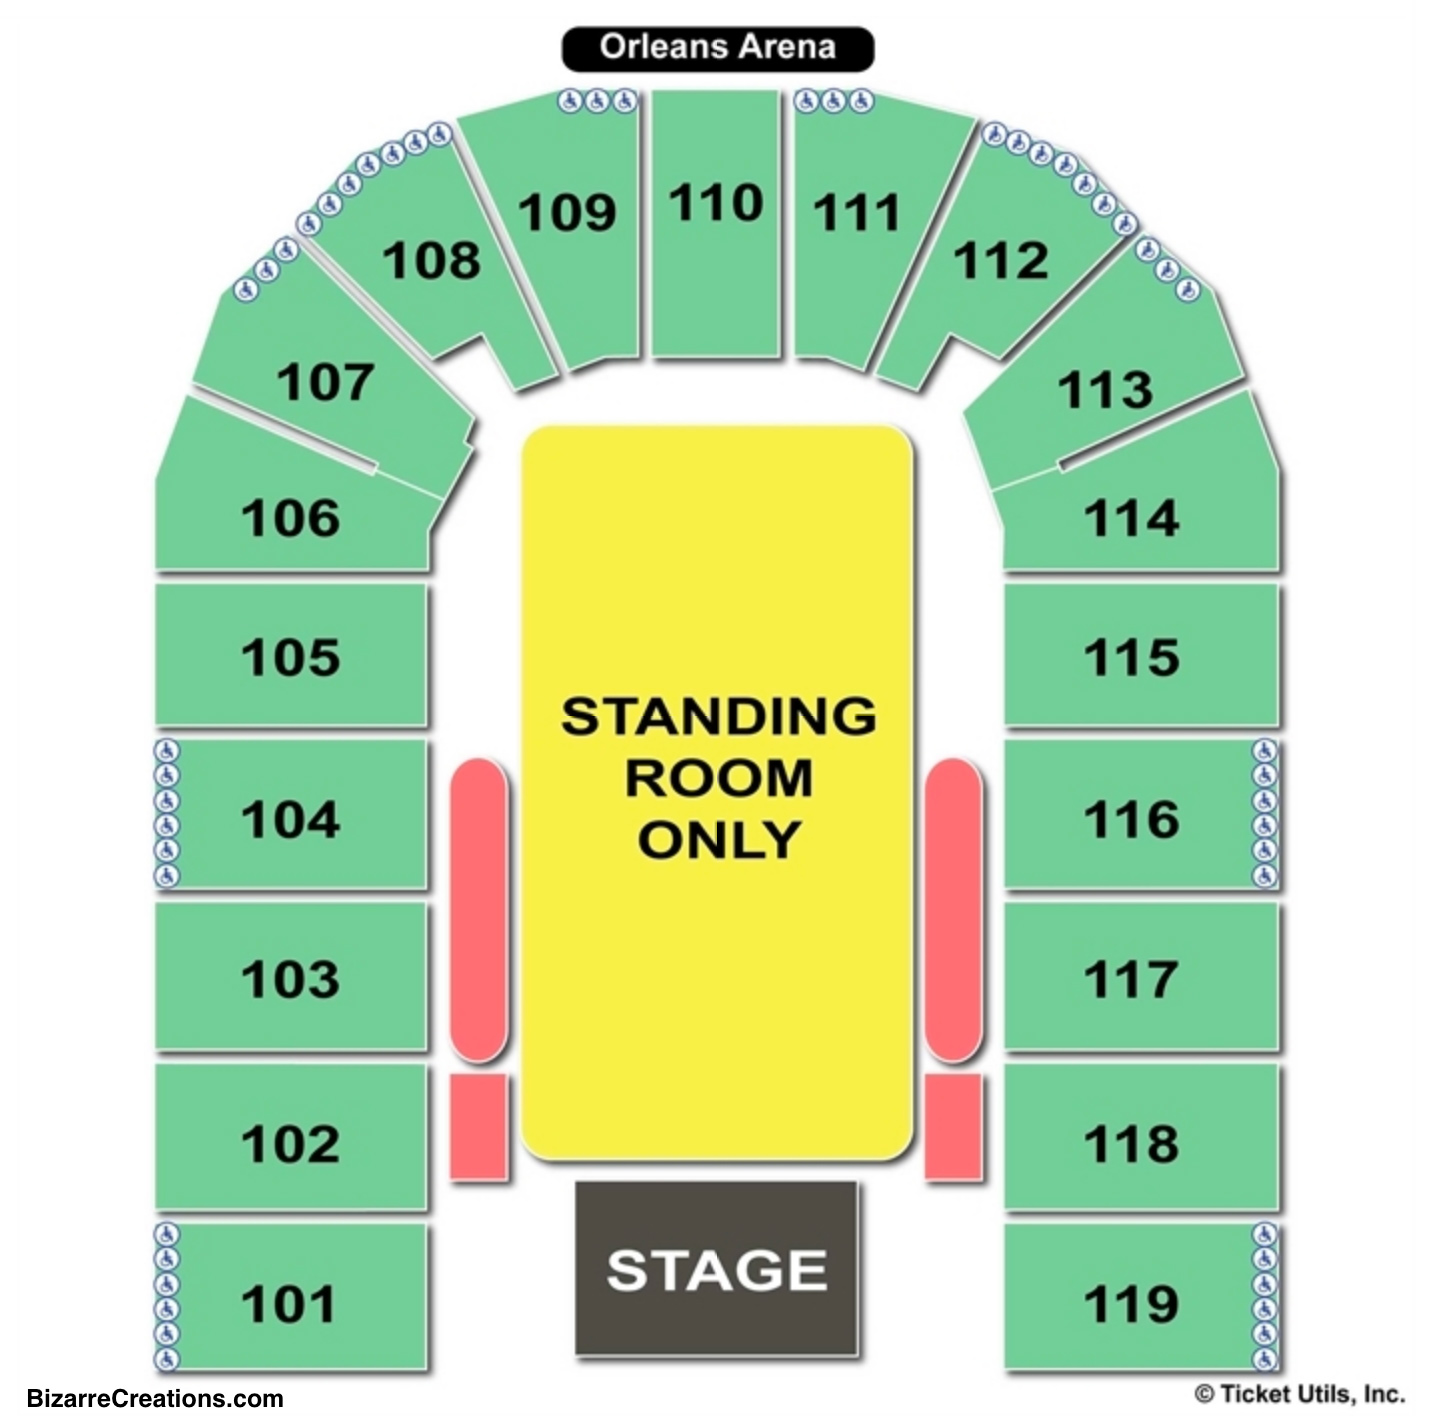 Orleans Arena Concert Seating Chart